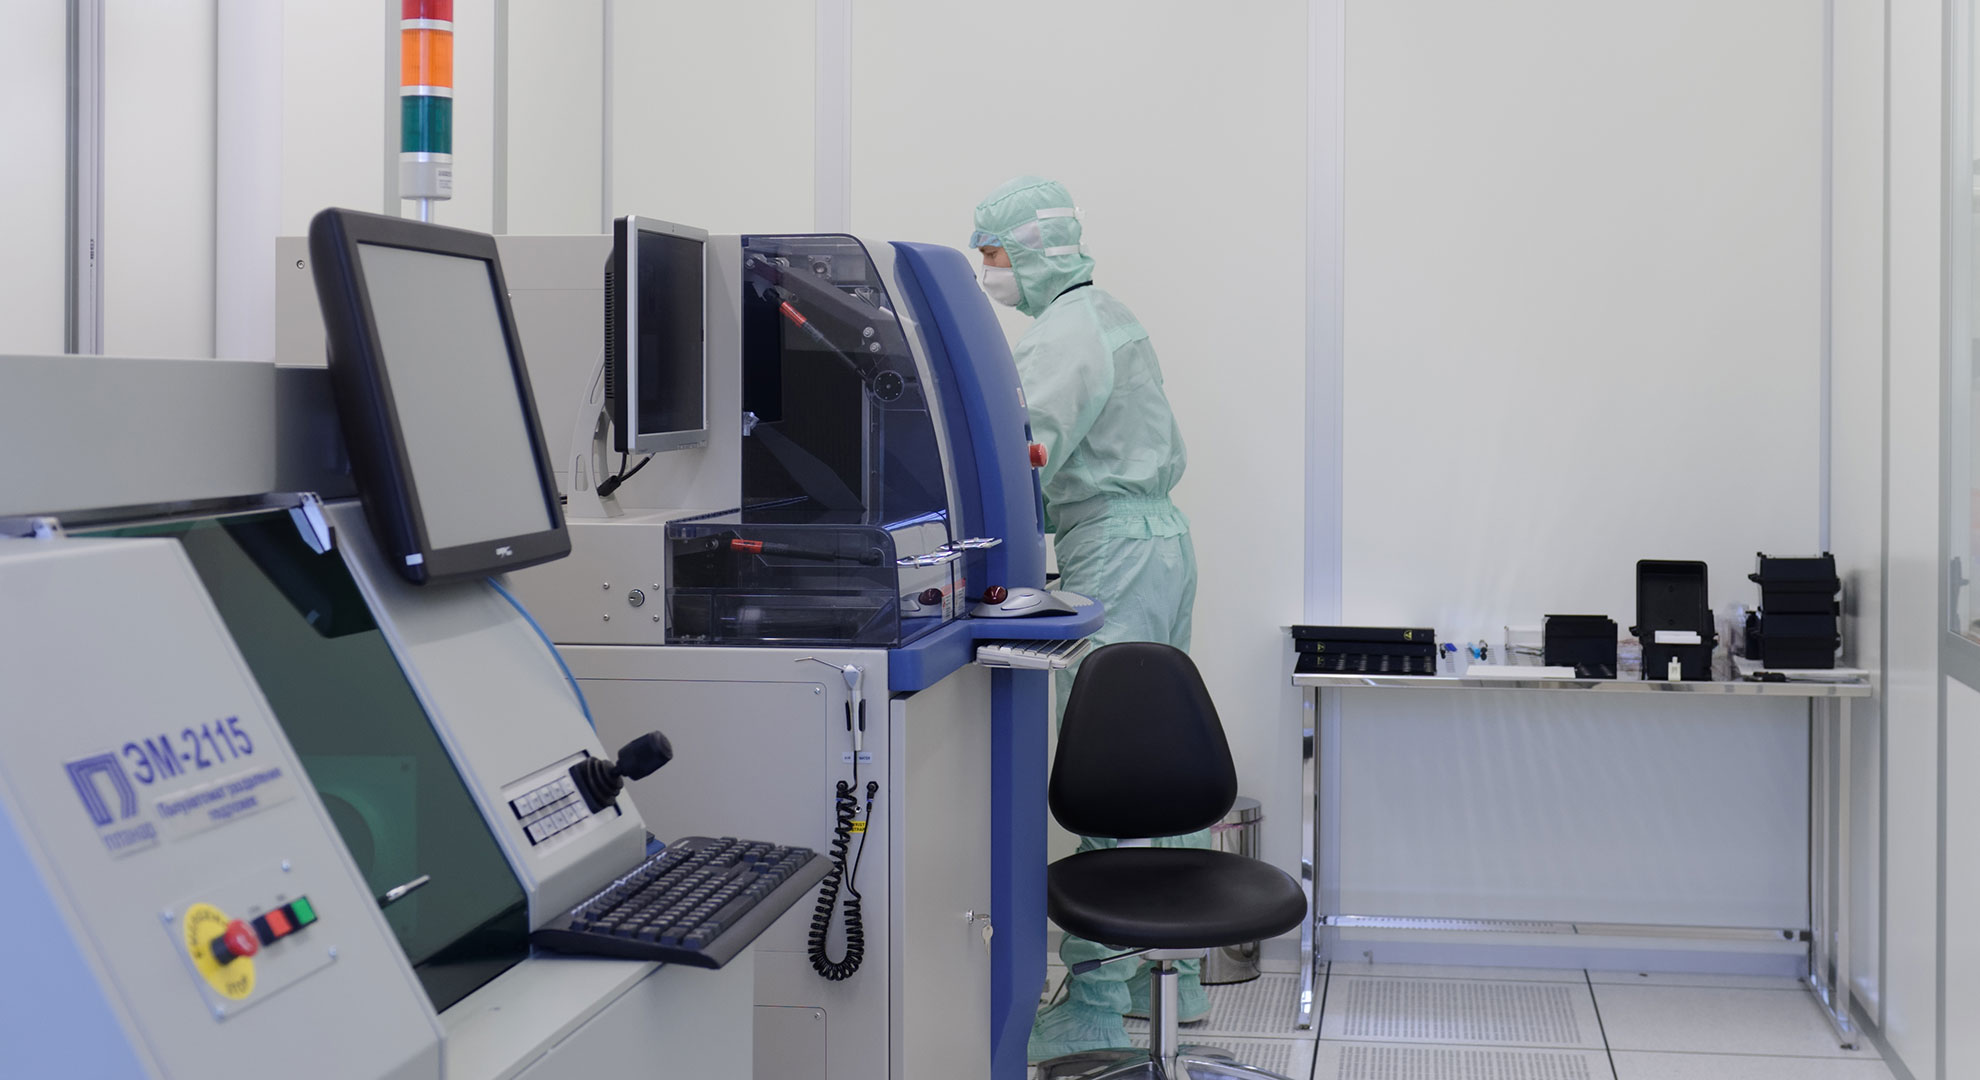 Kiemarme lucht in cleanrooms